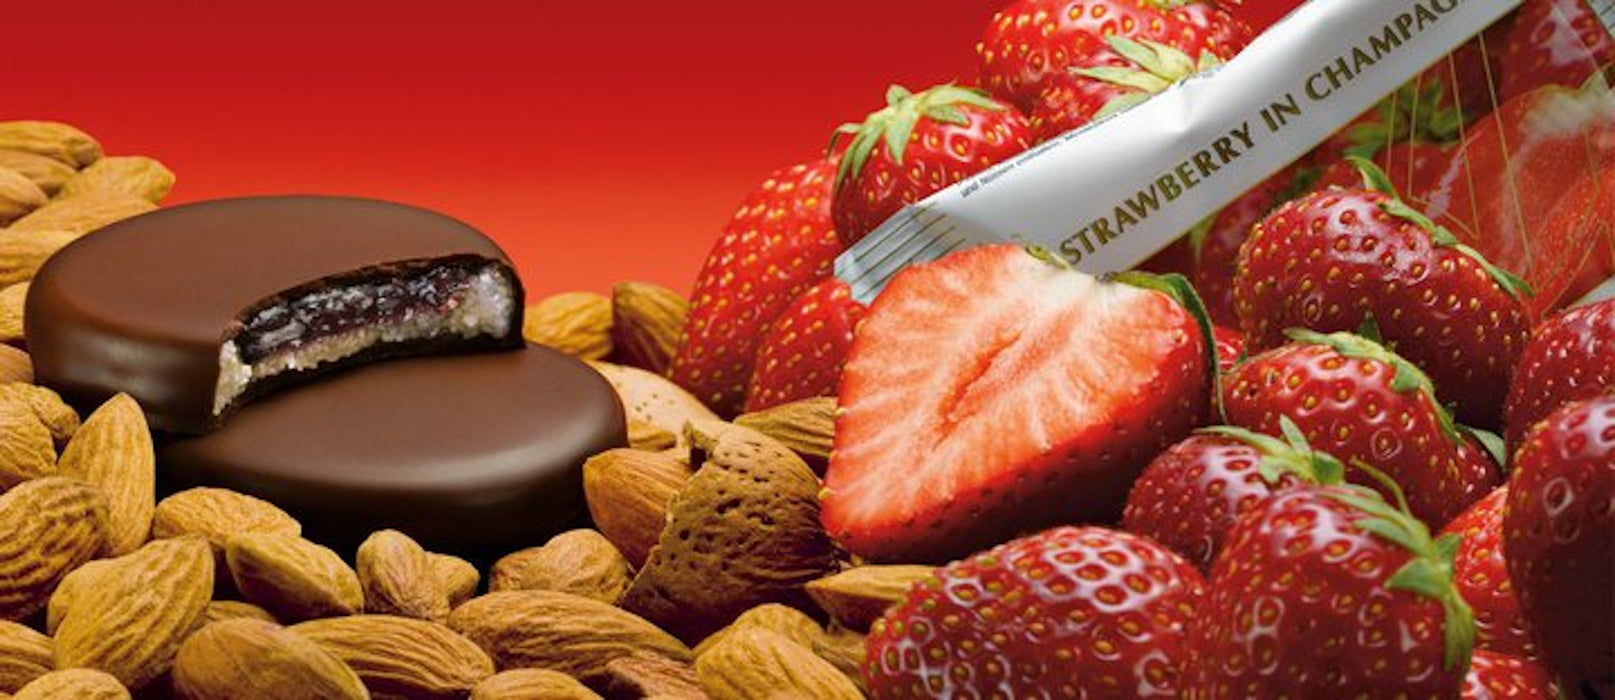 Anthon Berg Chocolate with Marzipan & Strawberry in Champagne Filling - European Deli